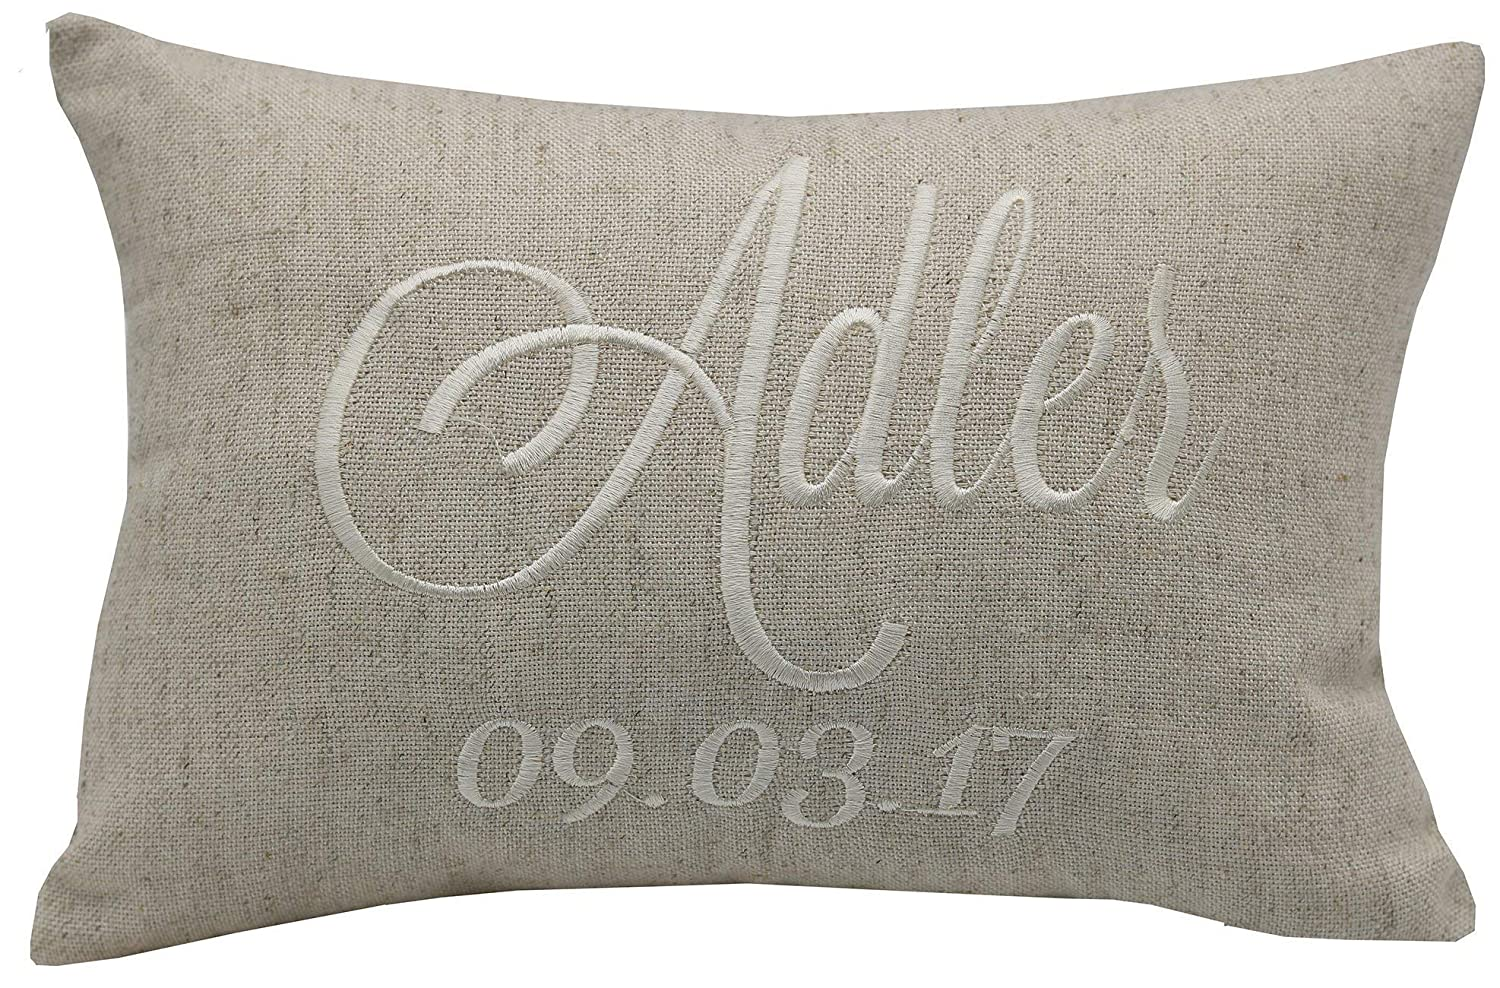 Rustic Wedding Gift Wedding Date Gift Engagement Gift Newlywed Gift Wedding Date Sign Family Name Bride Gift for her YugTex Pillowcases Wedding Gift Christmas Gifts.